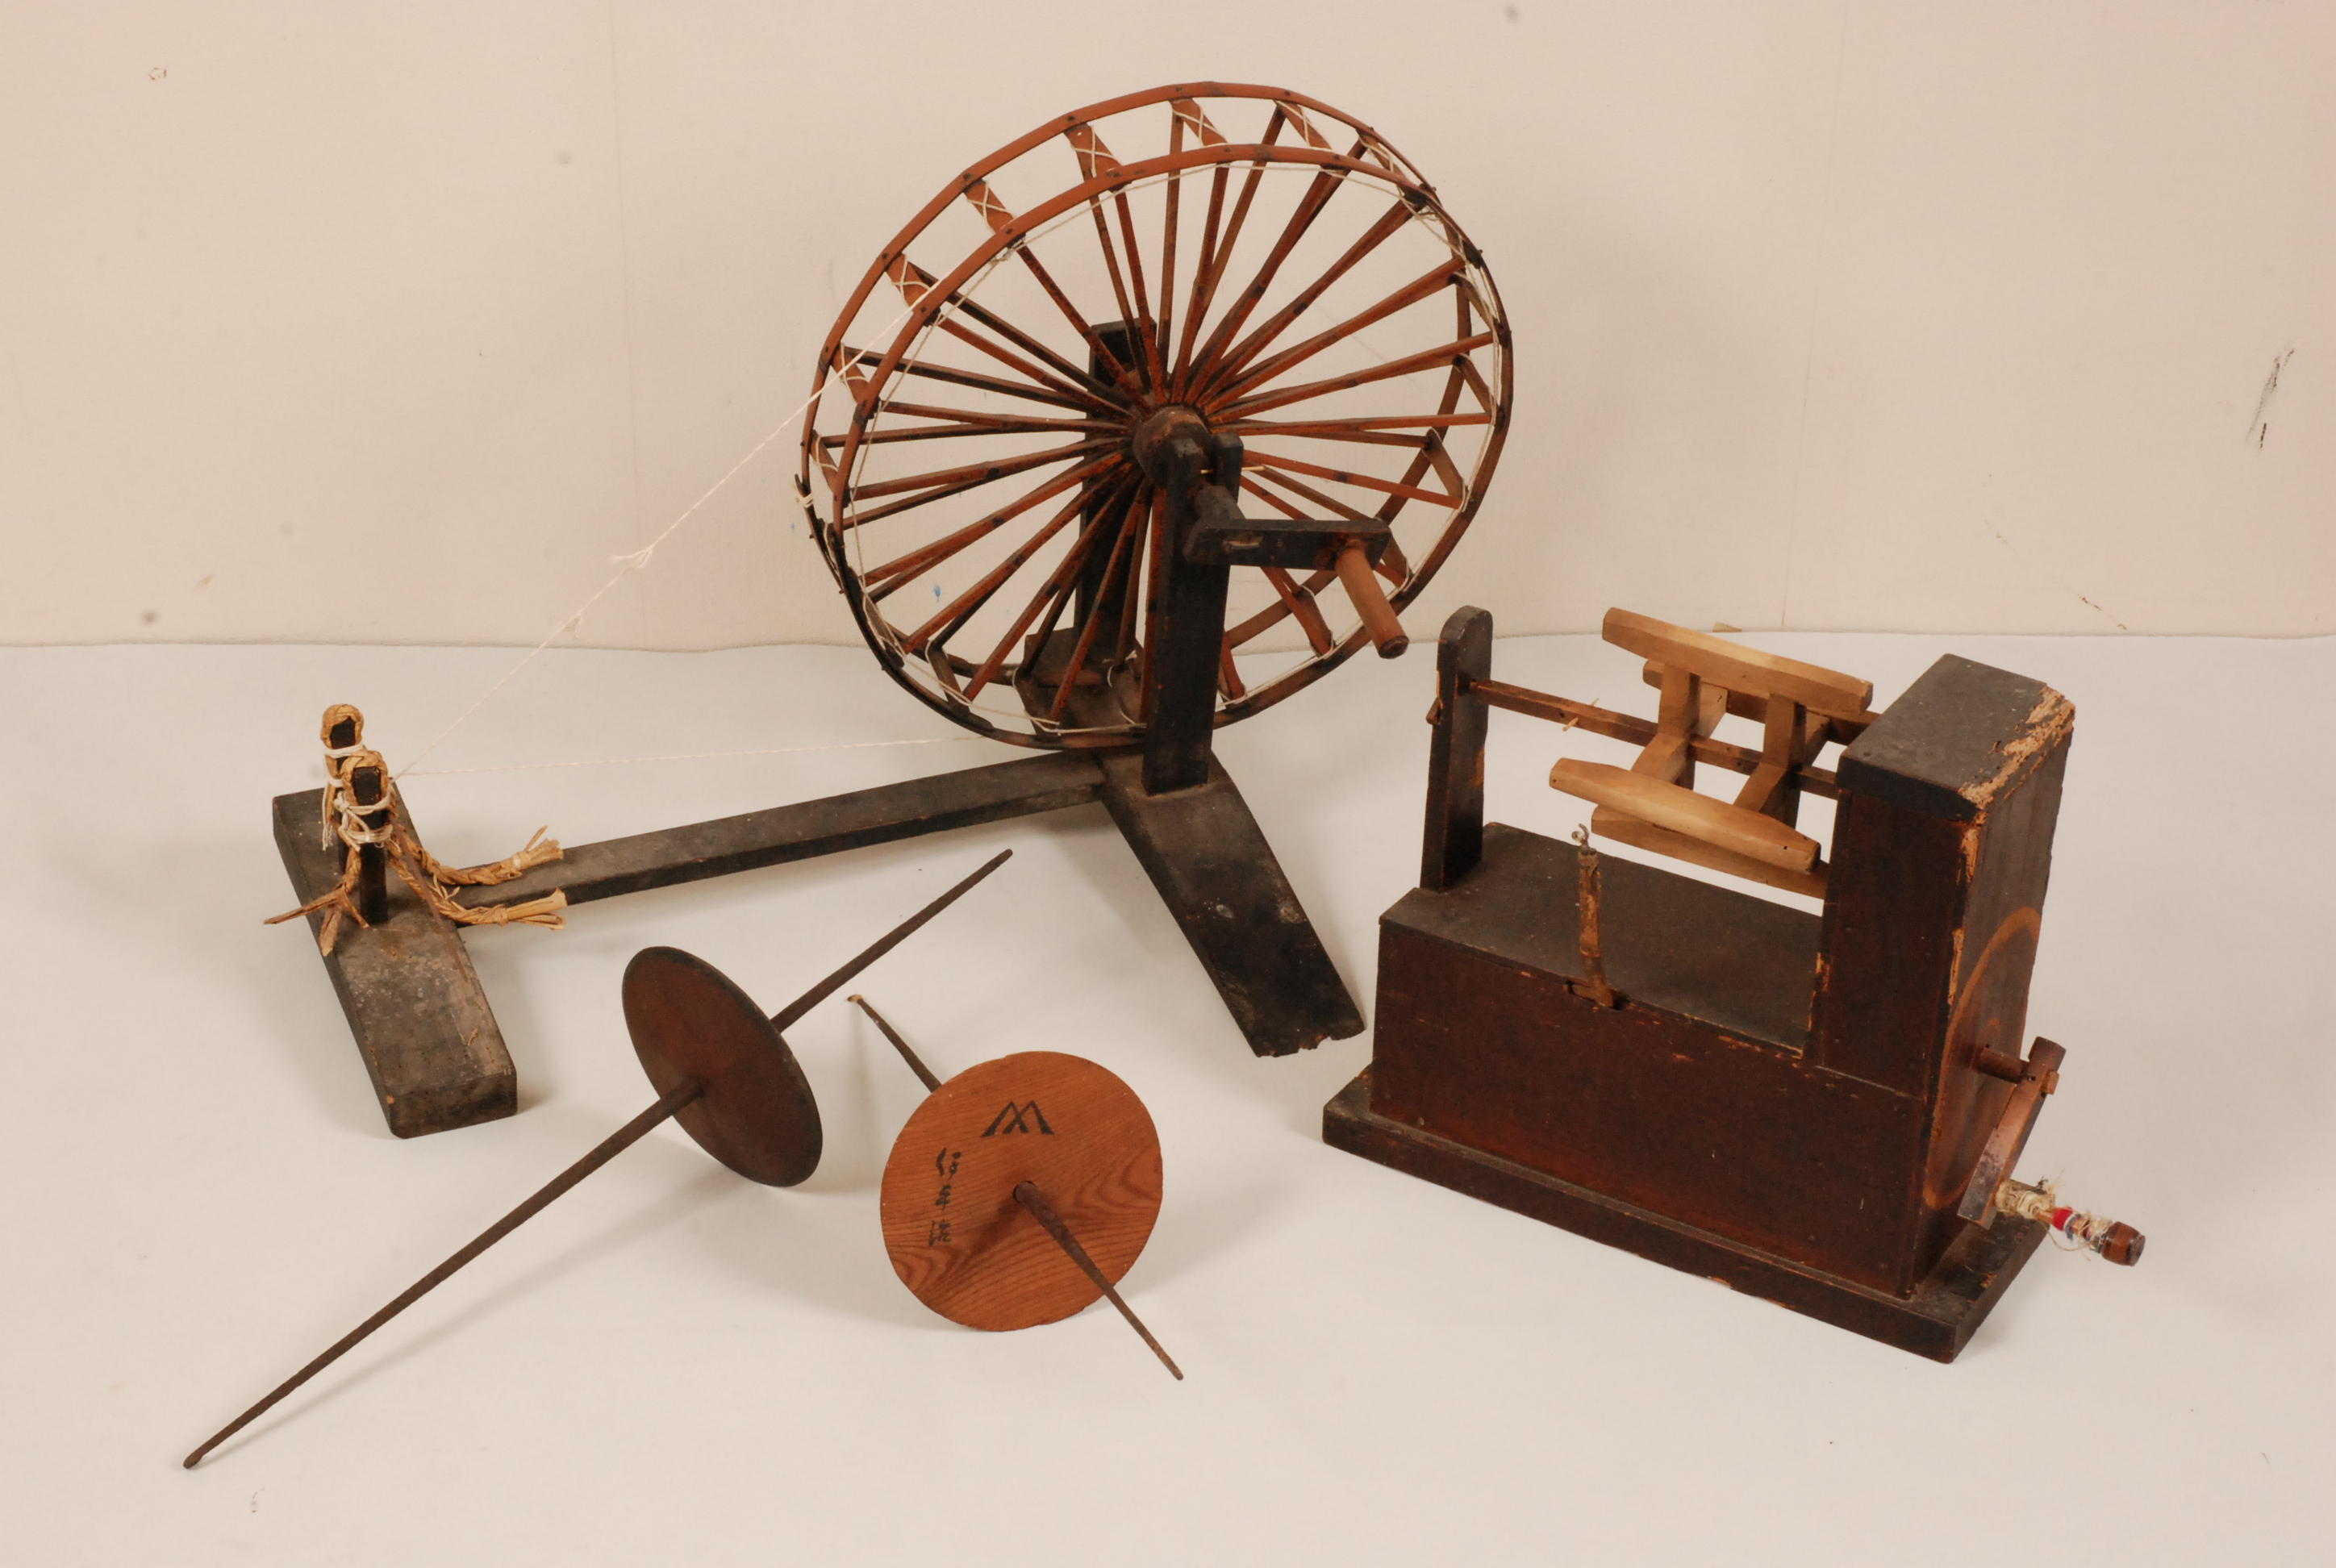 Tango textile weaving equipment and products